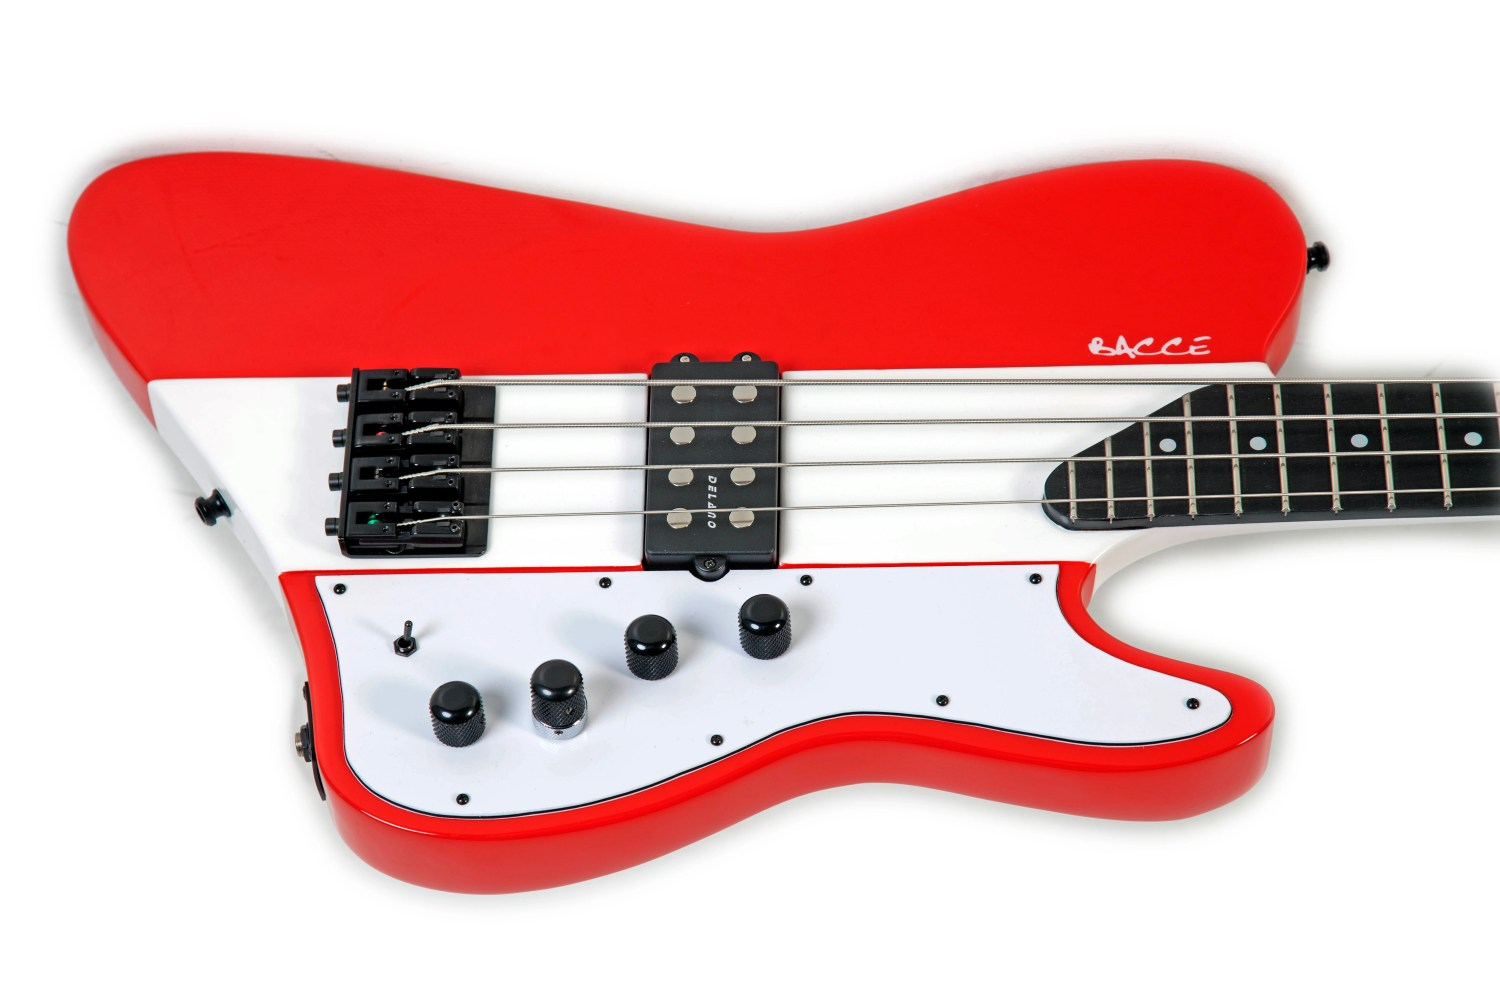 Bacce Guitars Anya 4 Powerbass Body